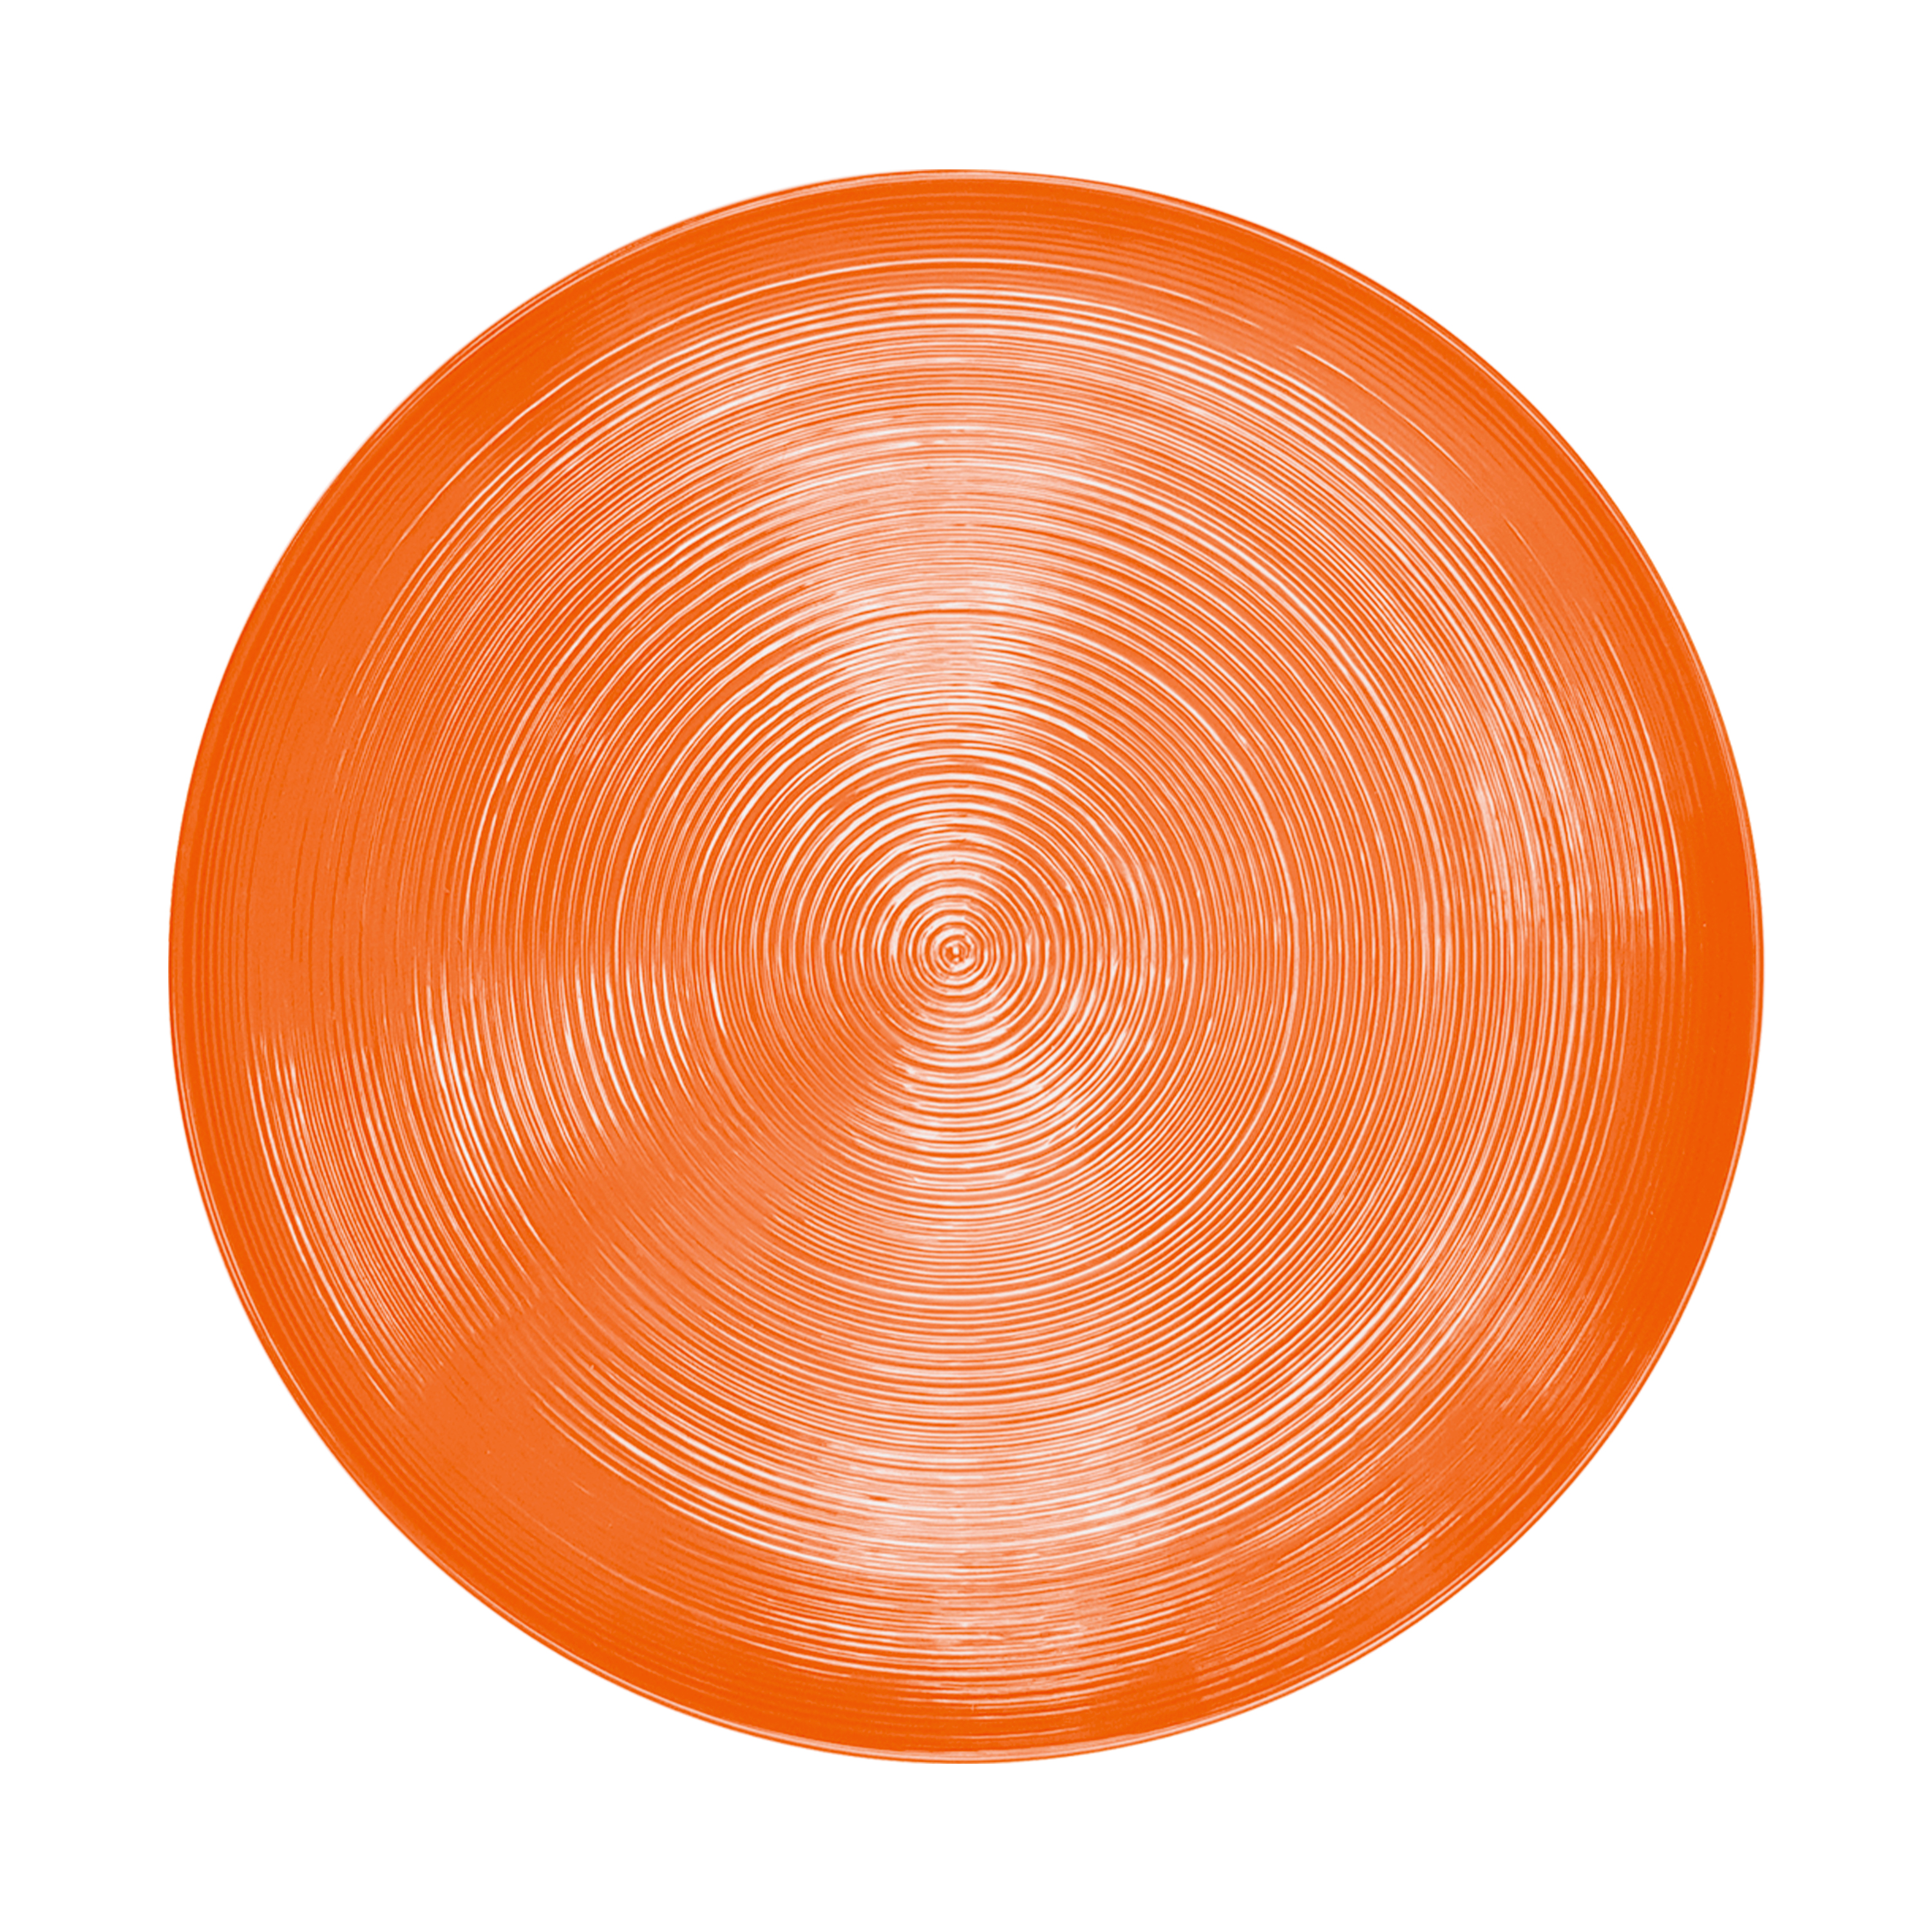 American Conventional Plate & Bowl Sets, Orange, 12-piece set slideshow image 4